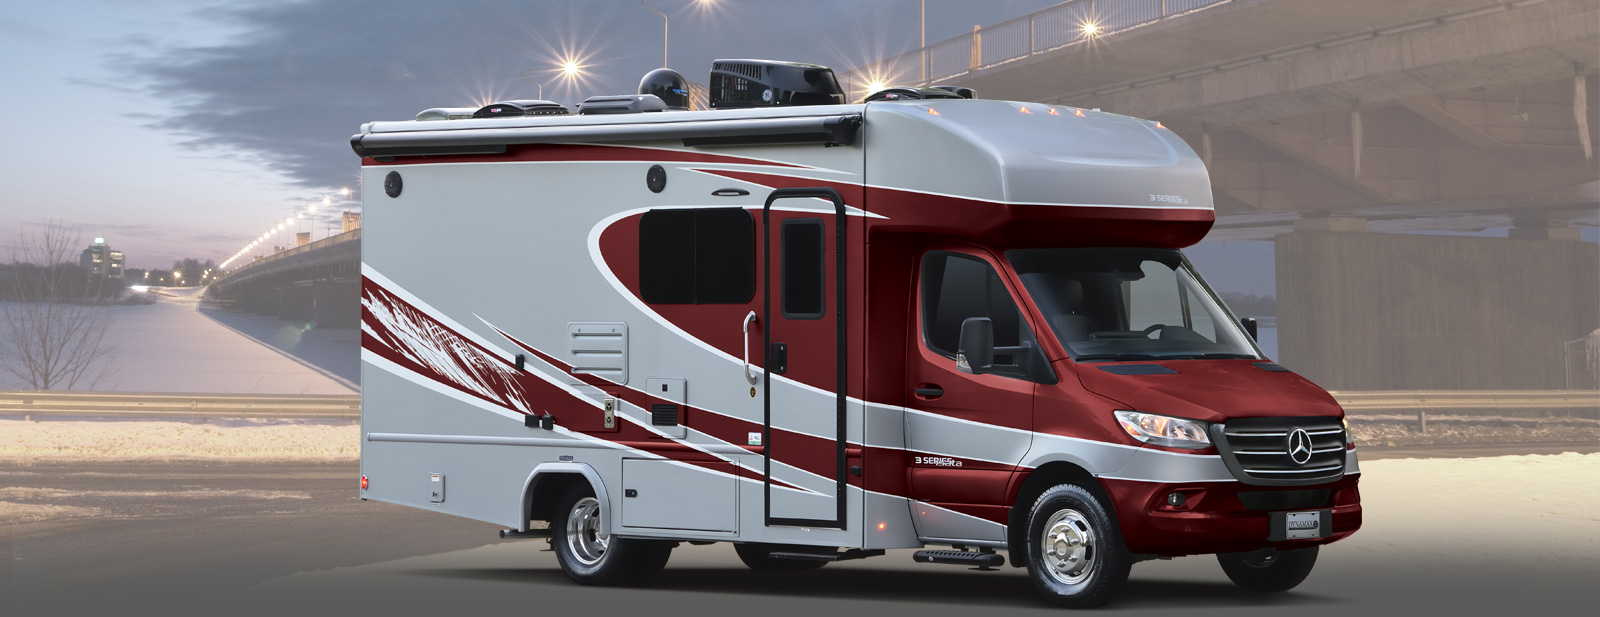 Isata 3 | Dynamax - Manufacturer of Luxury Class C & Super C Motorhomes